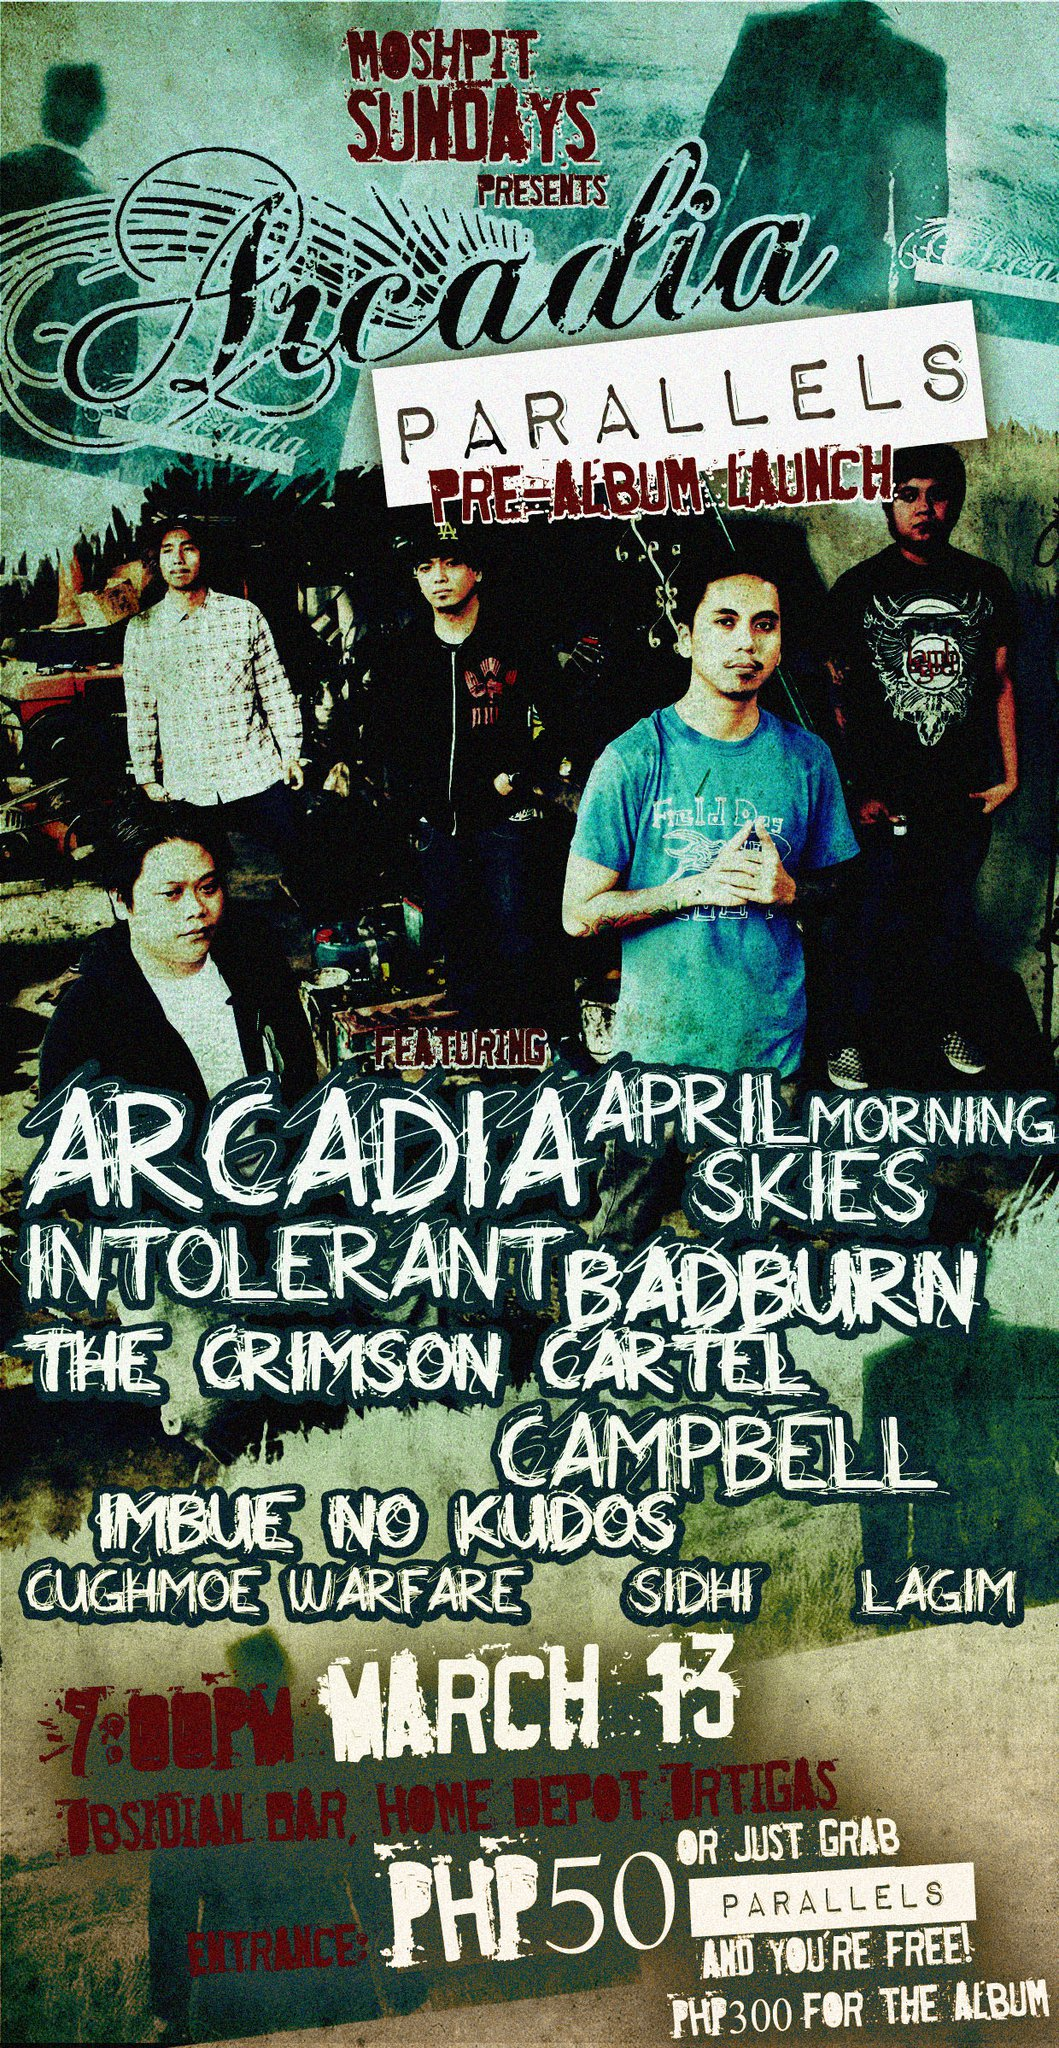 """OBSIDIAN BAR TURNS ONE! NIGHT 3: MOSHPIT SUNDAY presents ARCADIA's """"PARALLELS"""""""